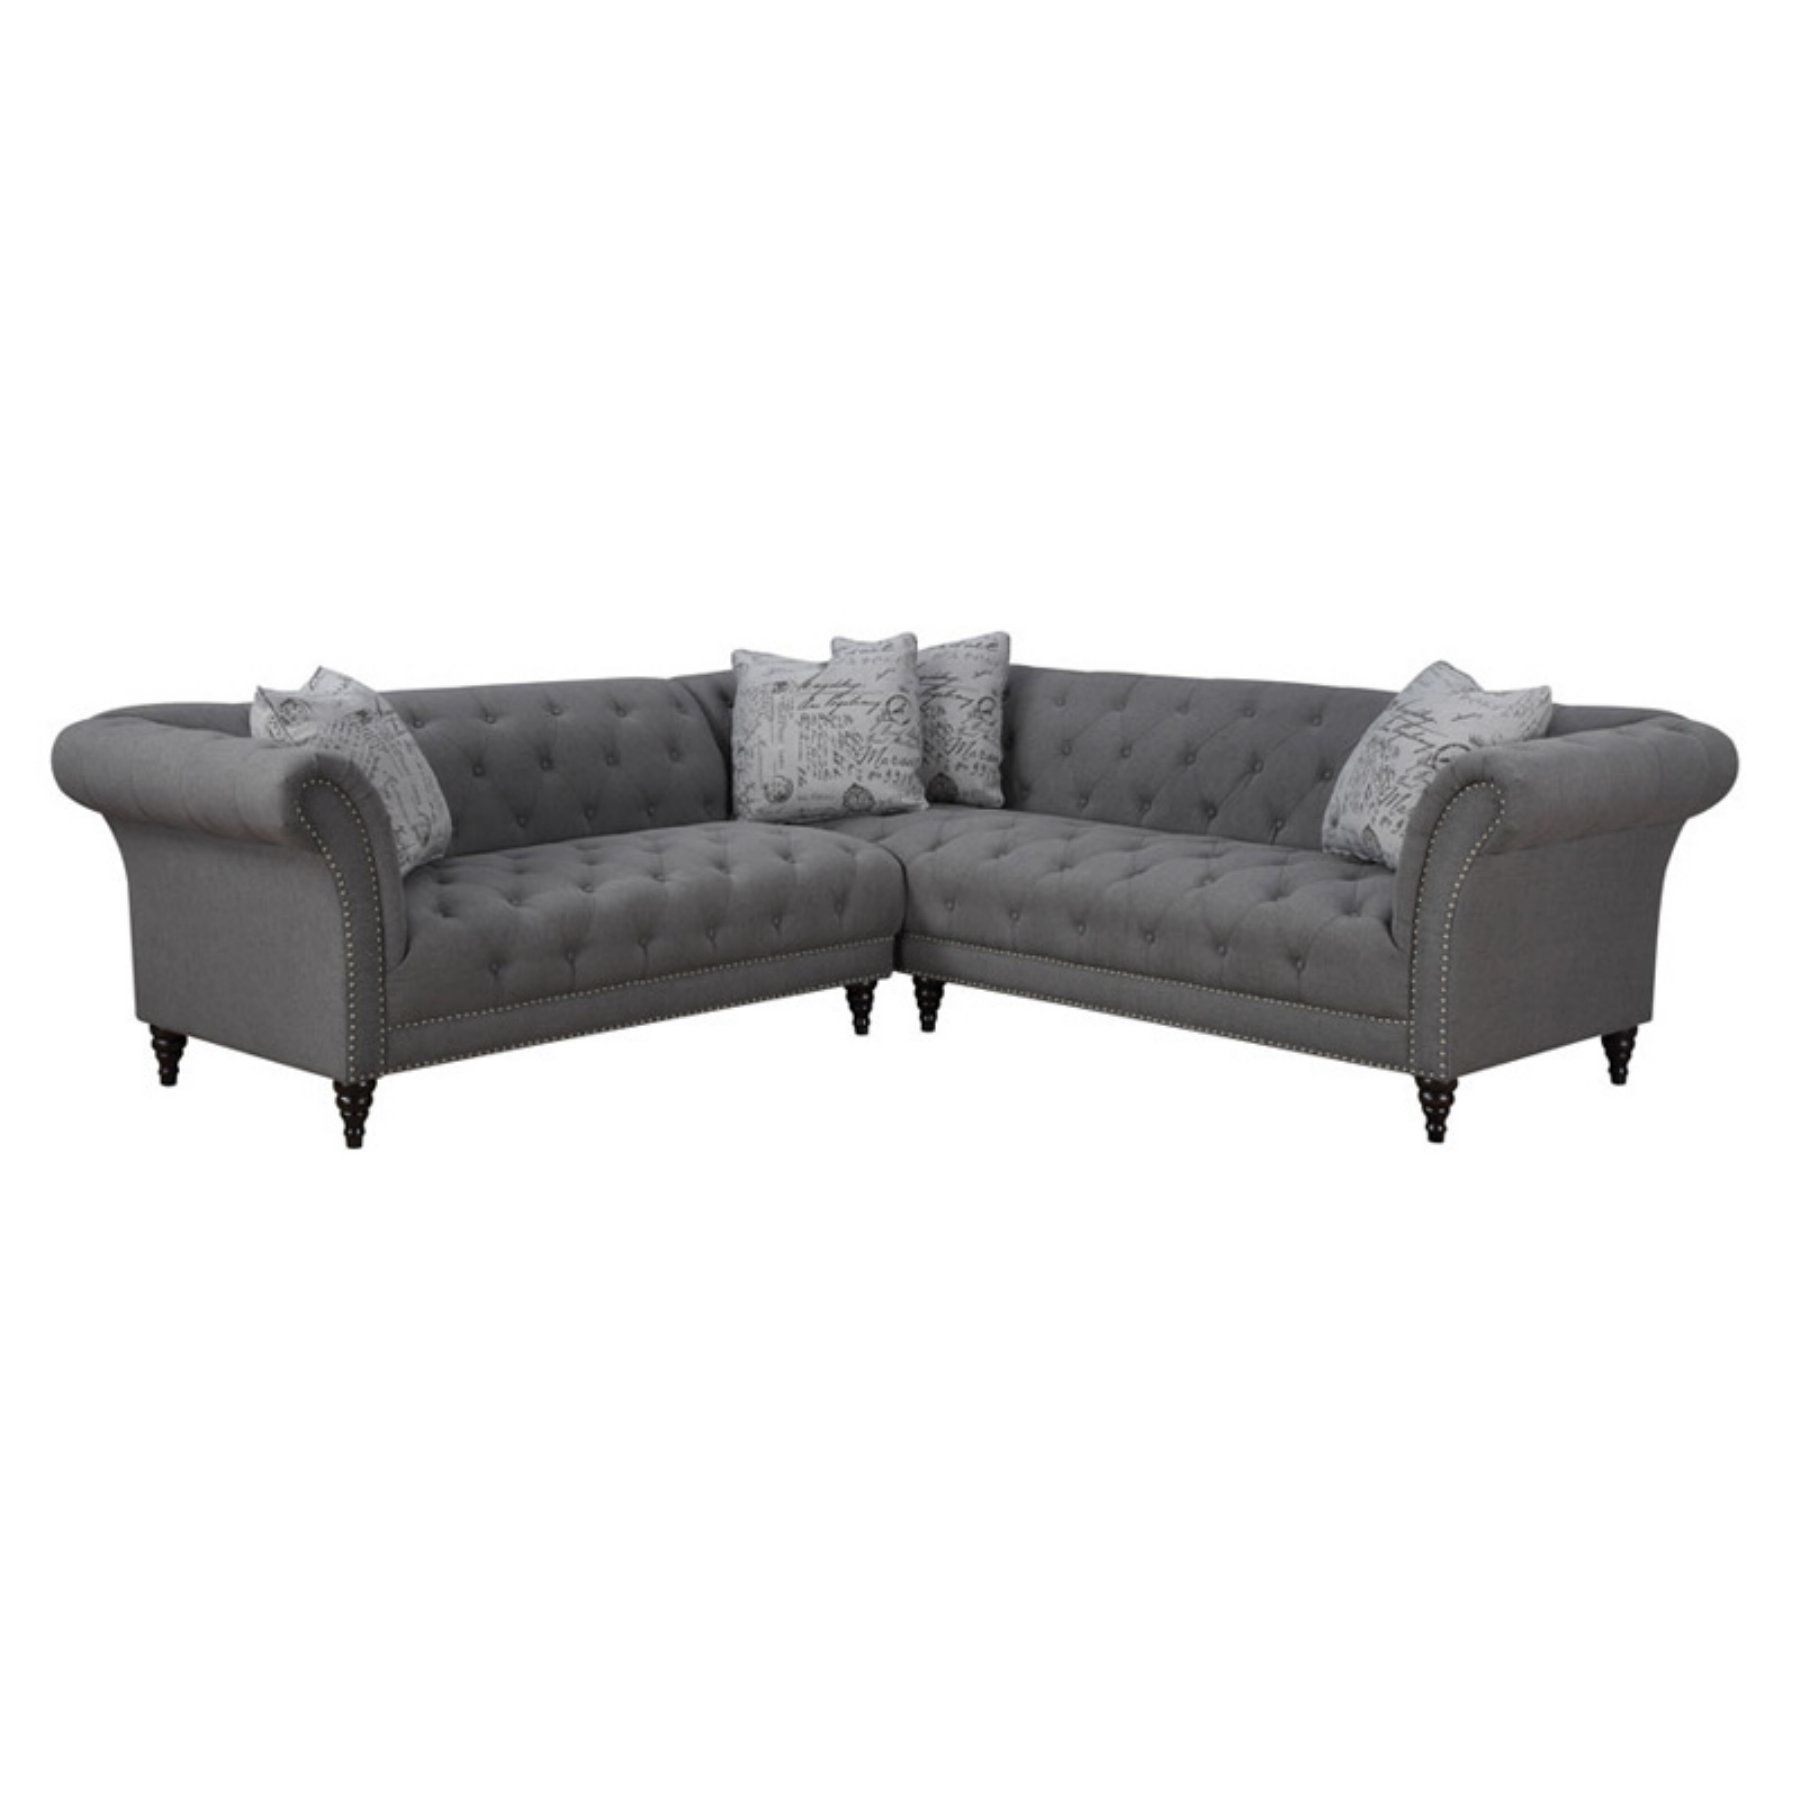 Emerald Home Antoinette 2 Piece Sectional Sofa - U4285-11-12-19-K ...